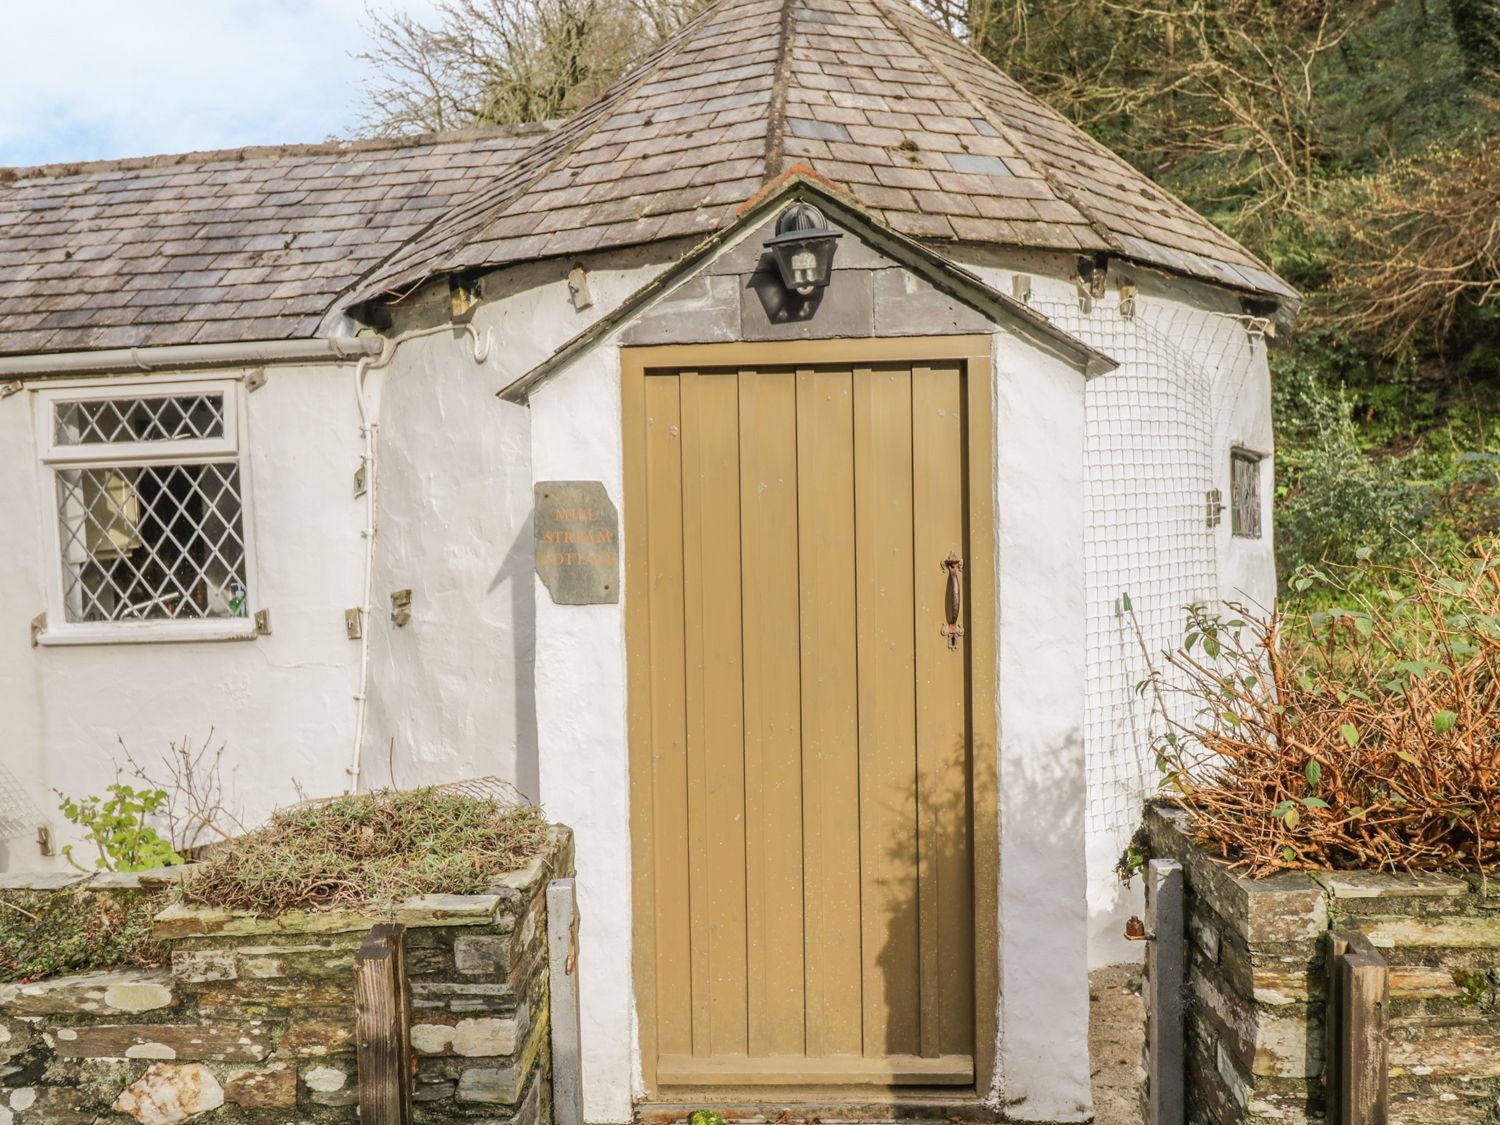 Millstream Tintagel Trethevy Cornwall Self Catering Holiday